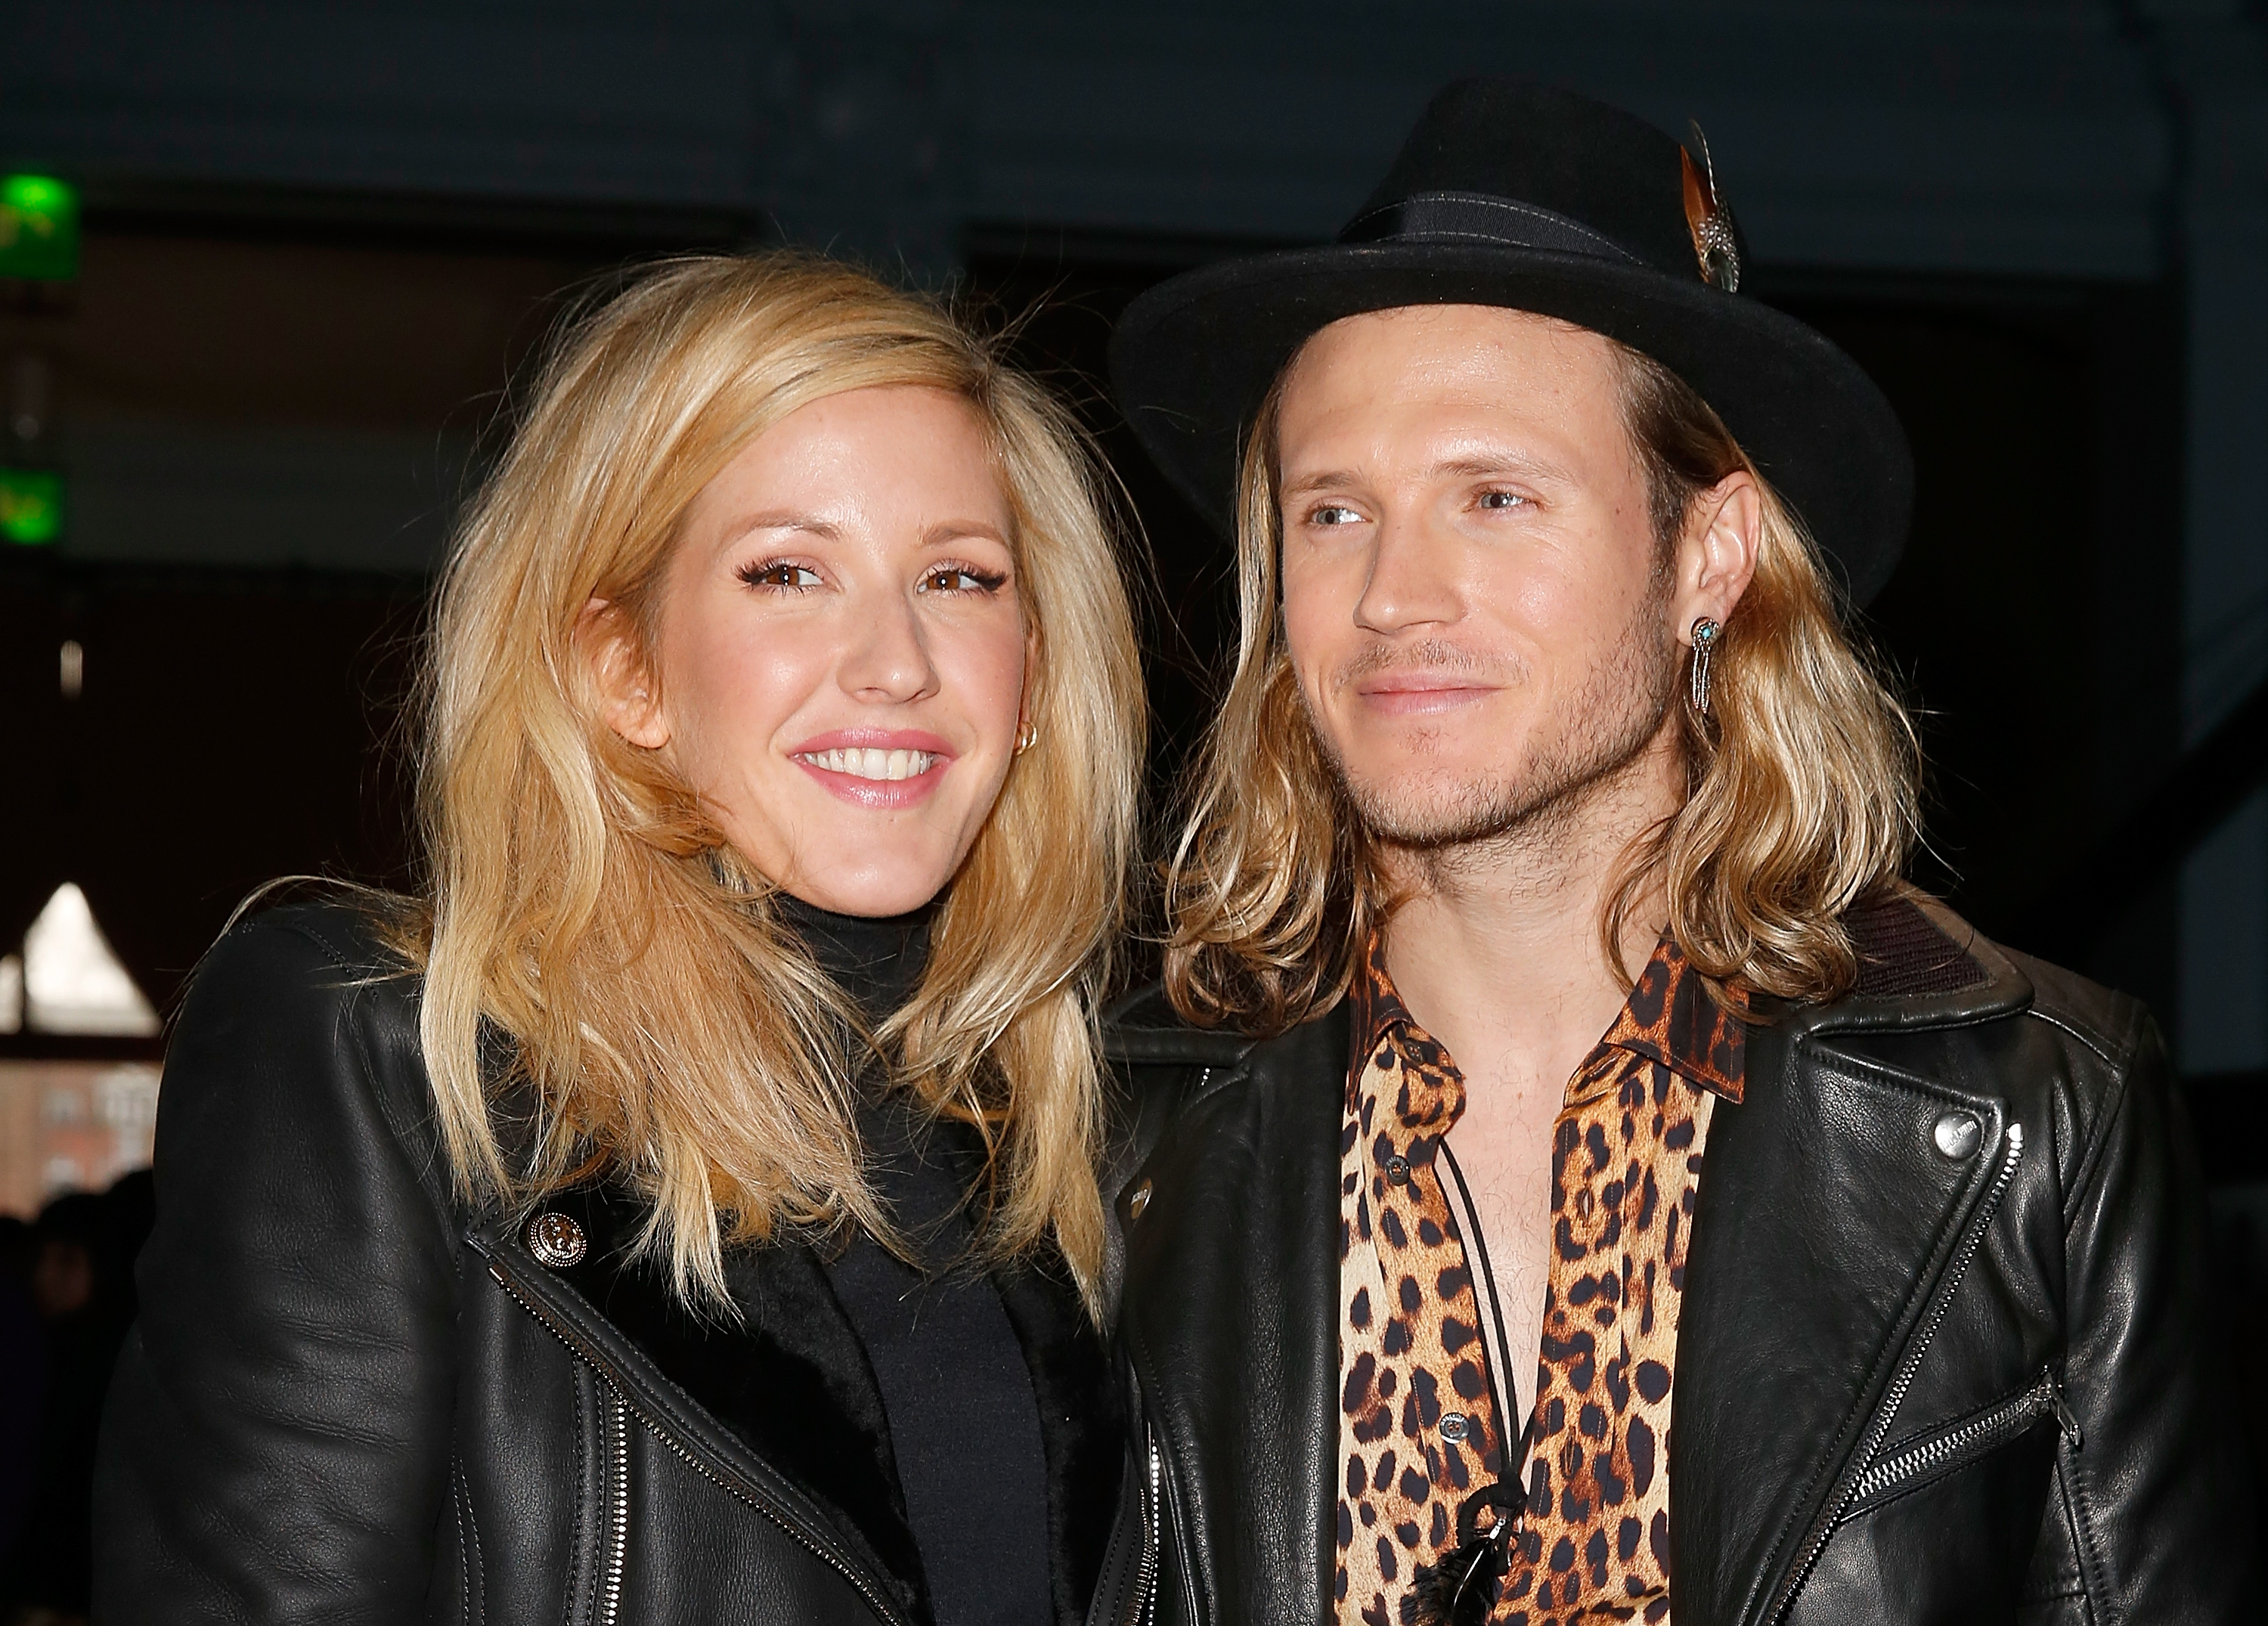 ellie goulding dating who